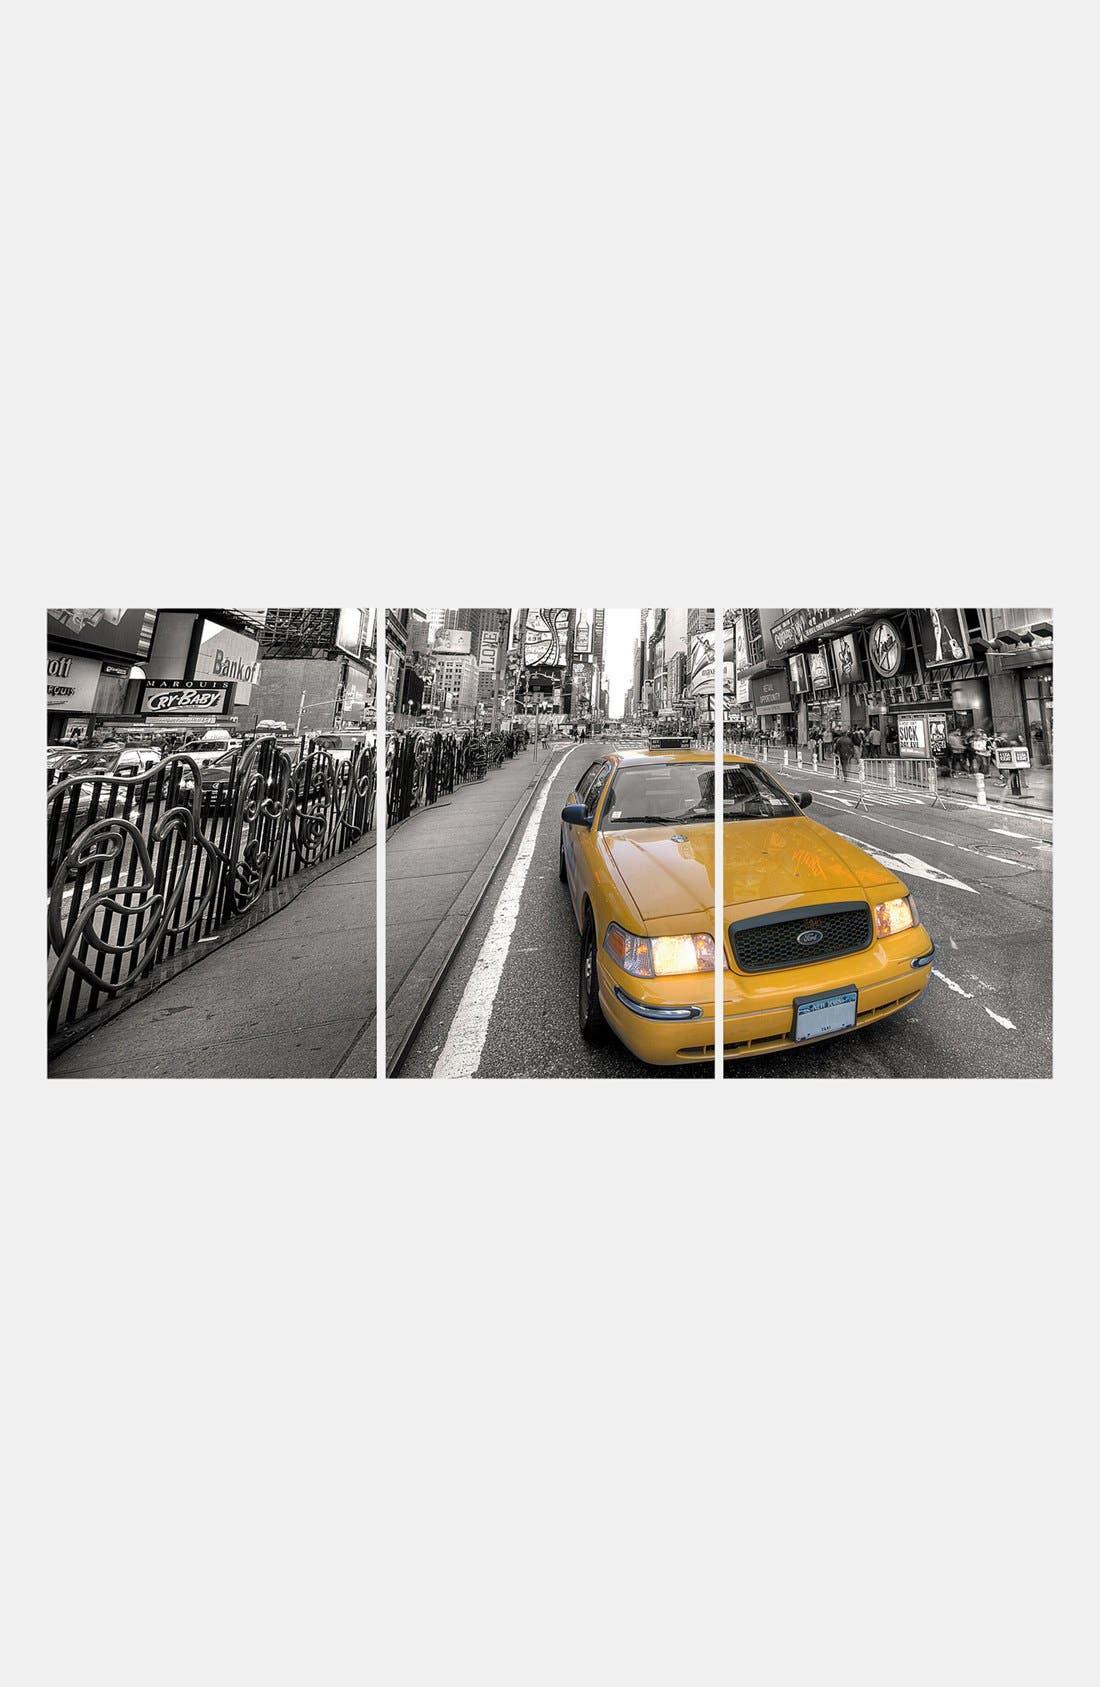 Alternate Image 1 Selected - Wallpops Triptych Taxi Wall Art